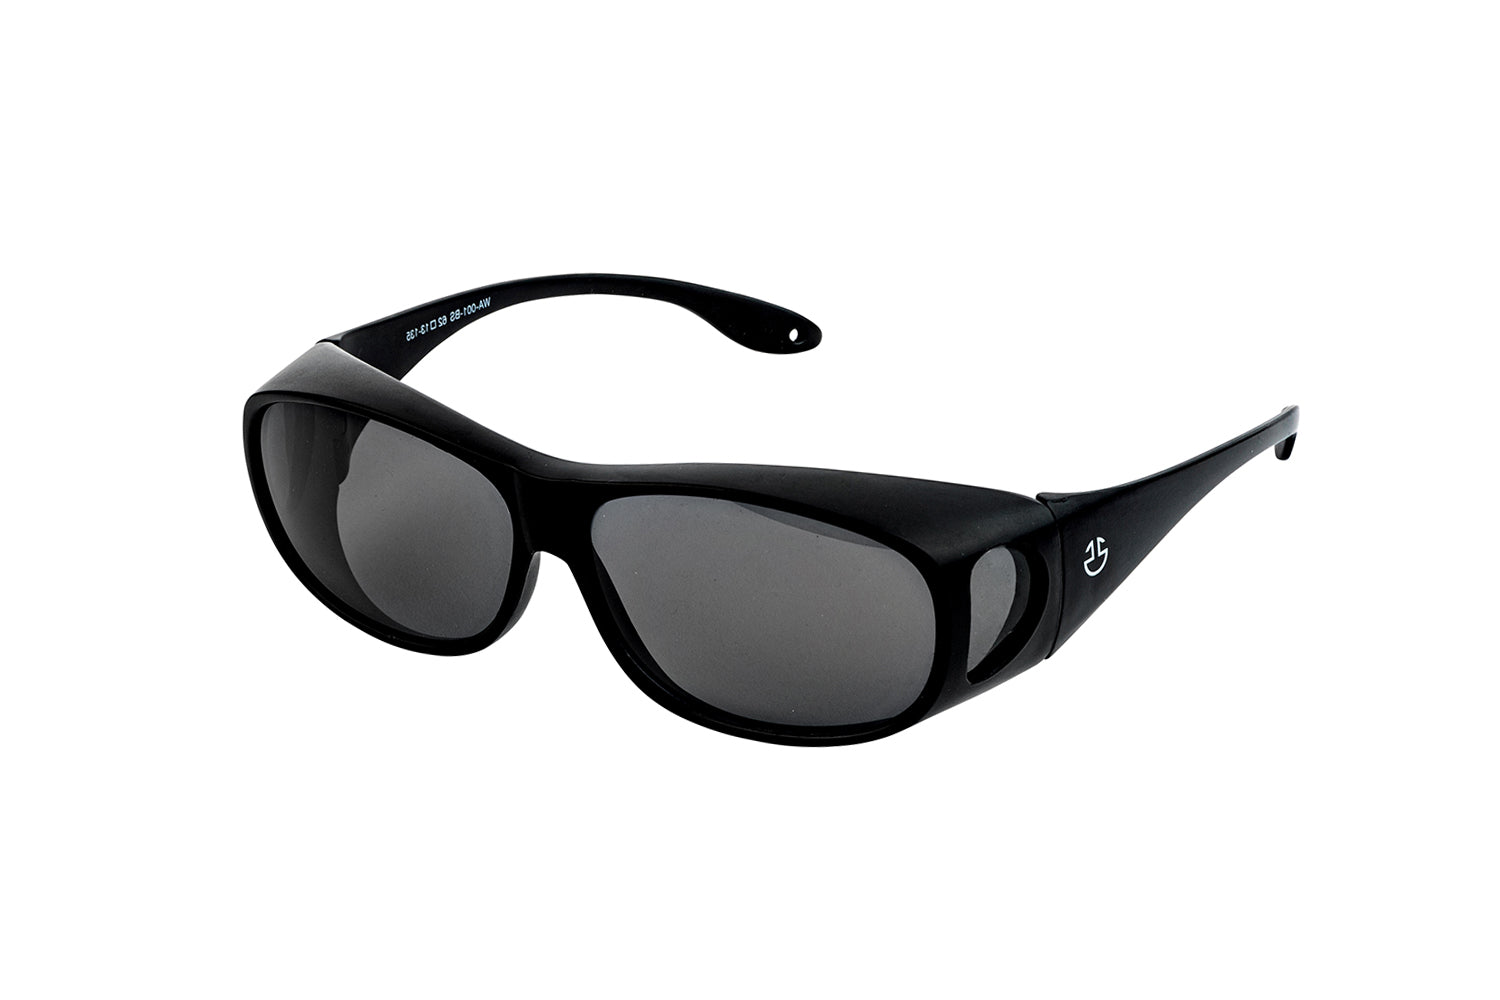 Sun Wraparound Goggles for Men & Women